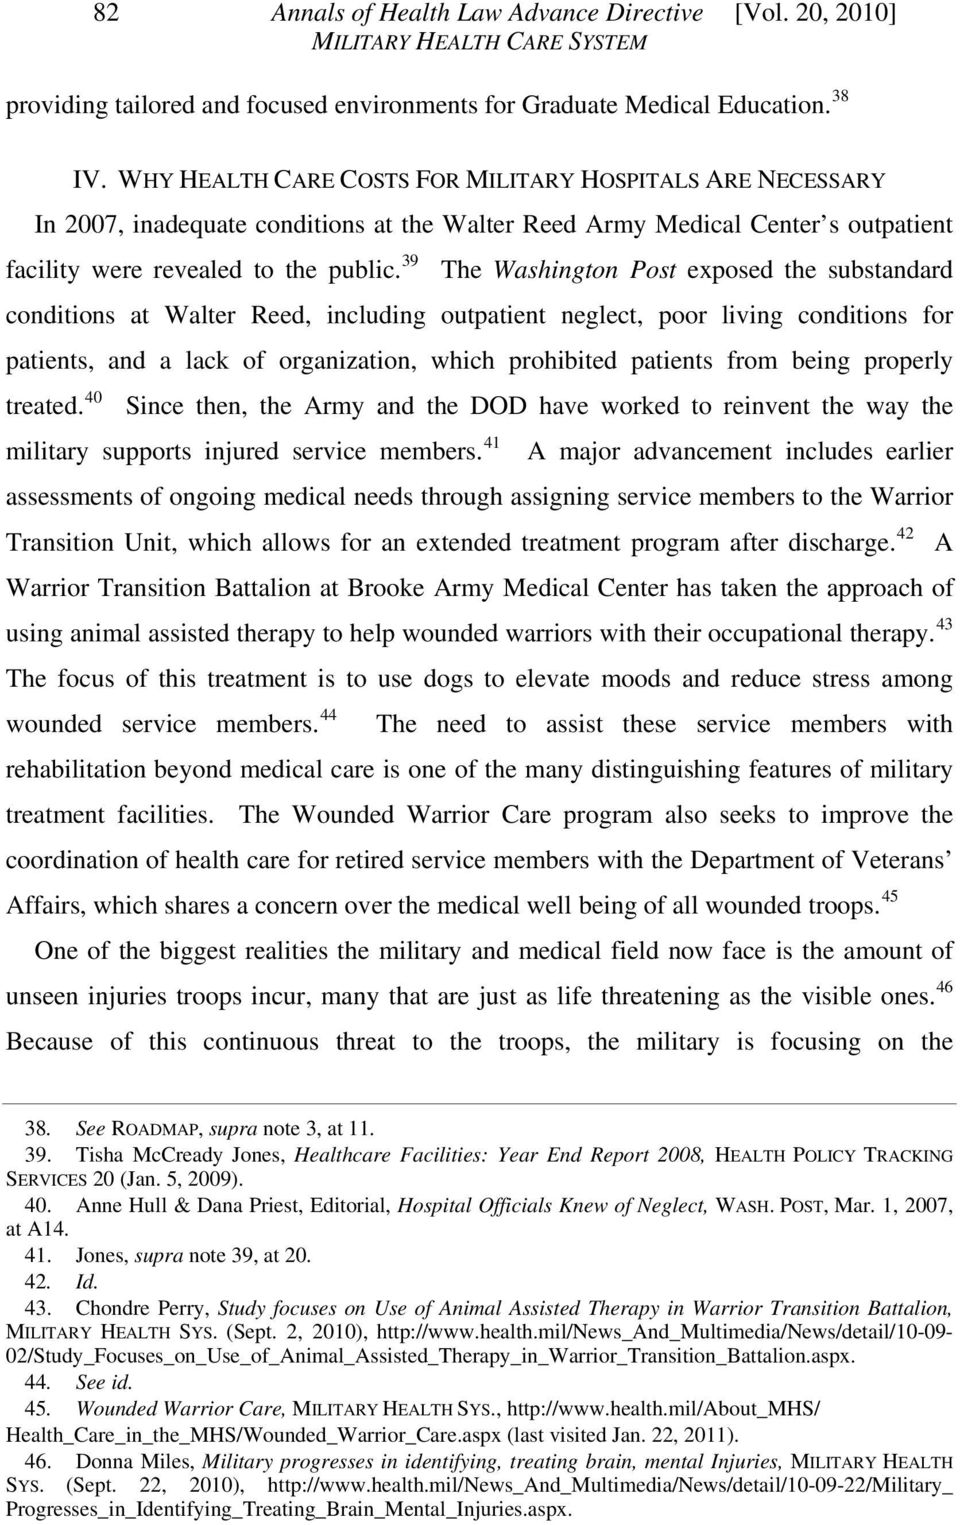 39 The Washington Post exposed the substandard conditions at Walter Reed, including outpatient neglect, poor living conditions for patients, and a lack of organization, which prohibited patients from